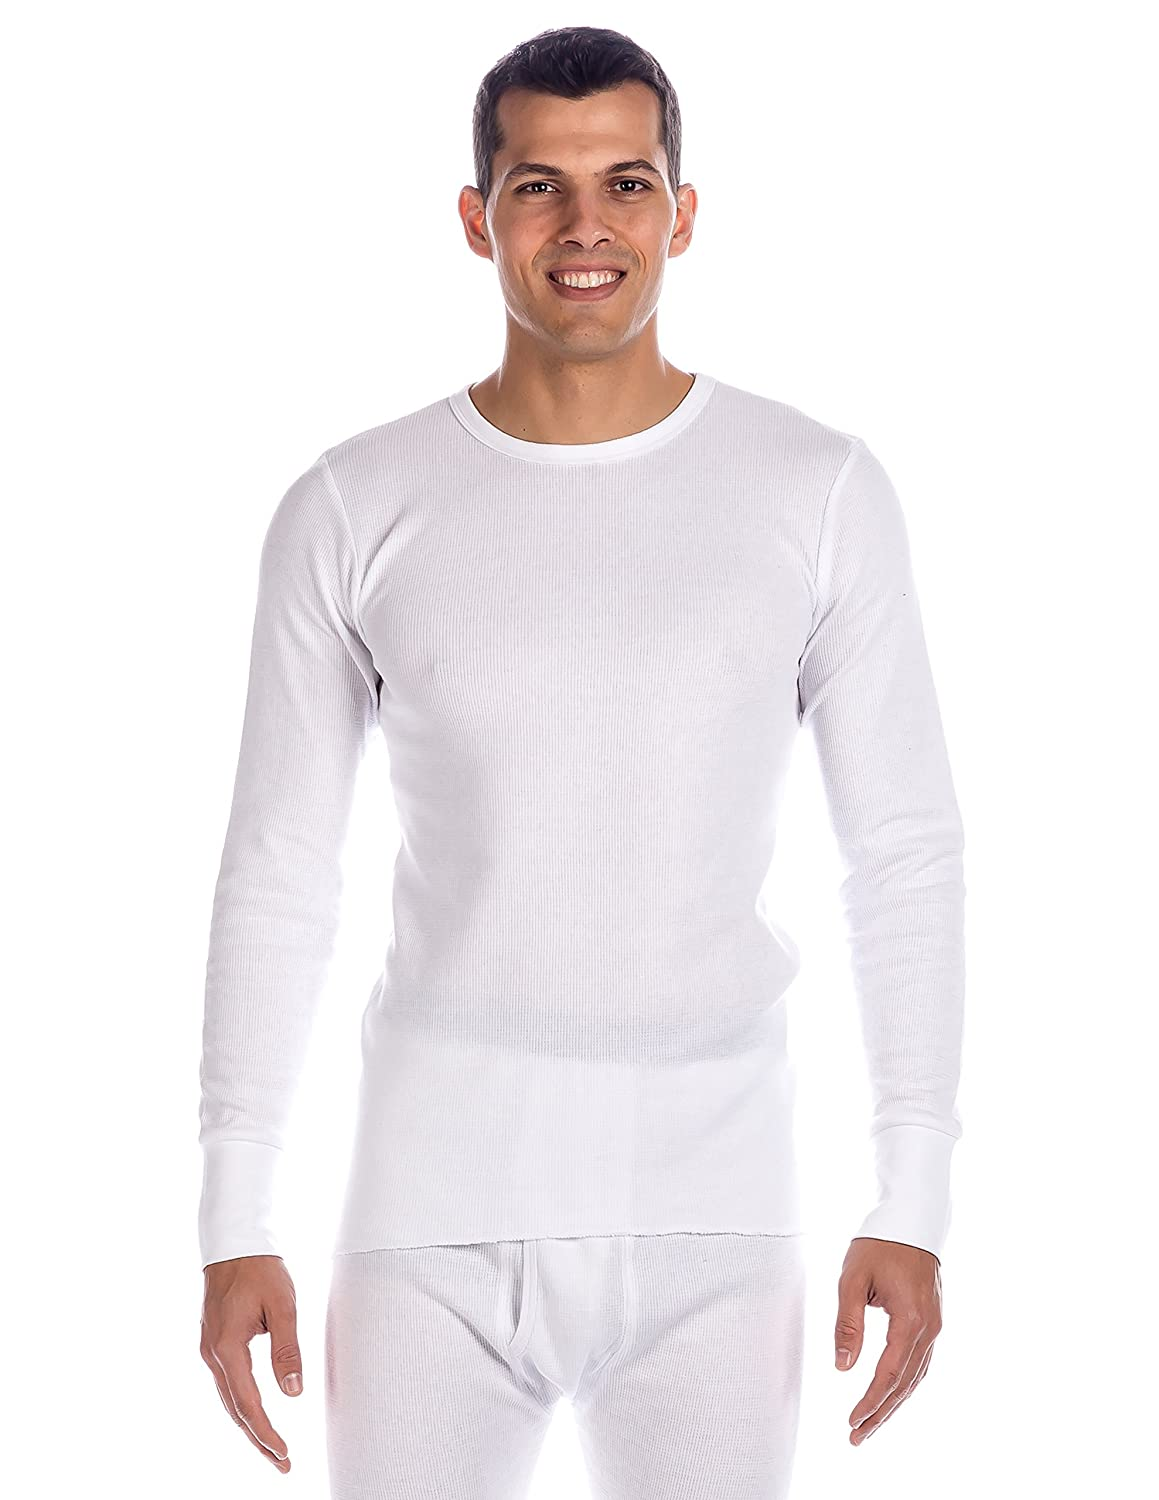 Noble Mount Men's Extreme Cold Waffle Knit Thermal Crew Top nmt_mn_thTop_wfl_xtreme_DBL_M